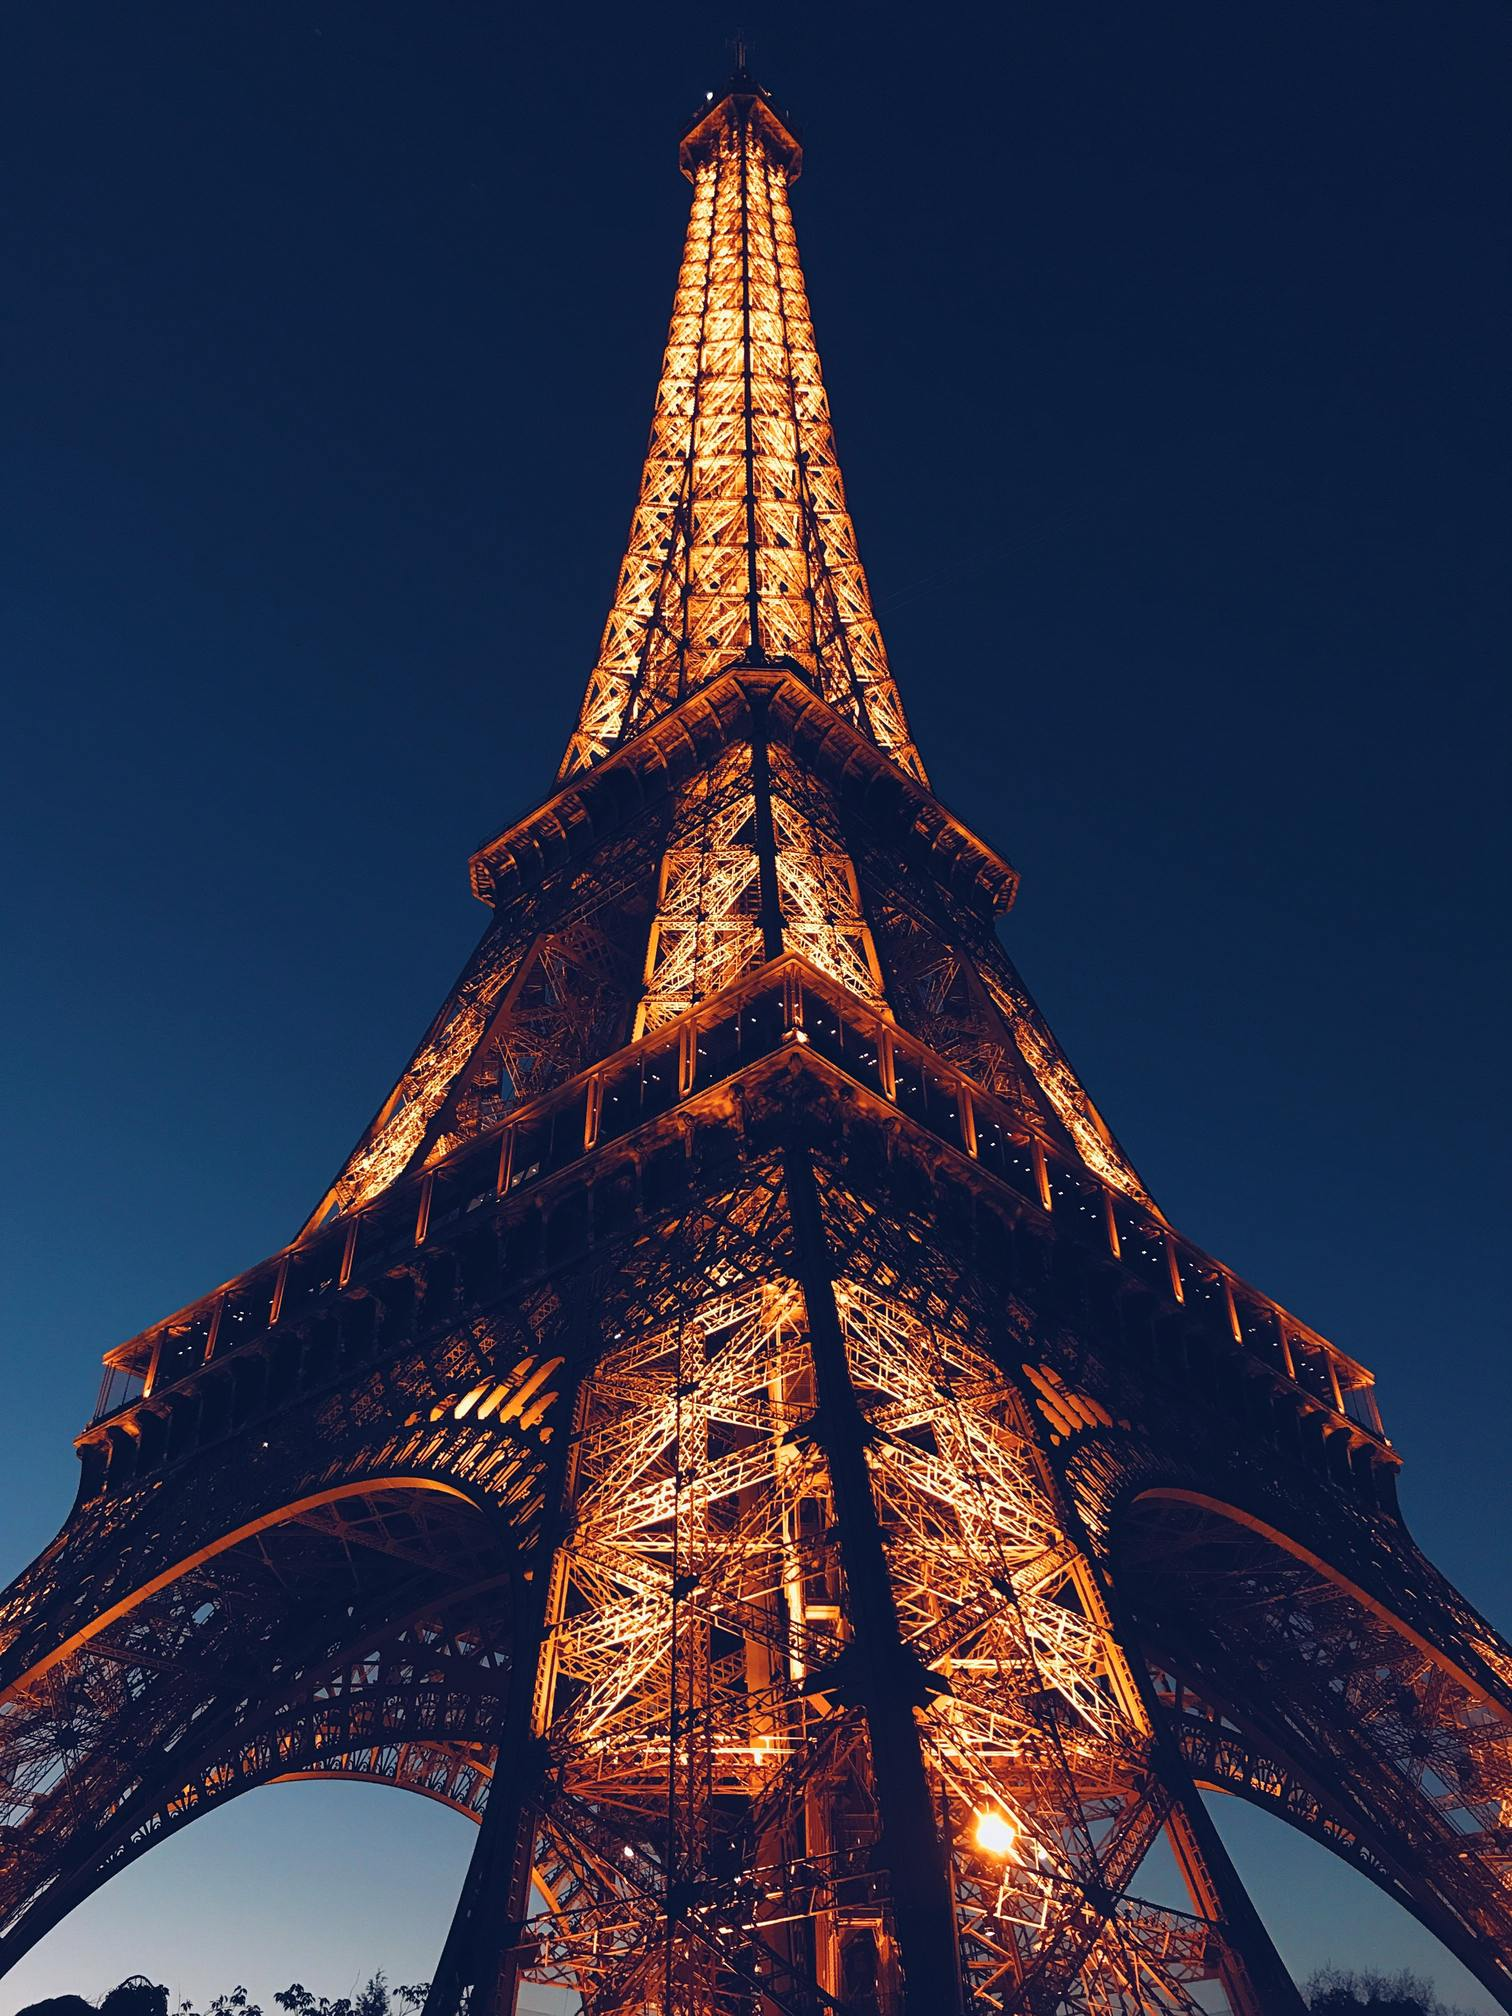 Eiffel Tower in Paris is a must visit monument in your First Holiday to Europe